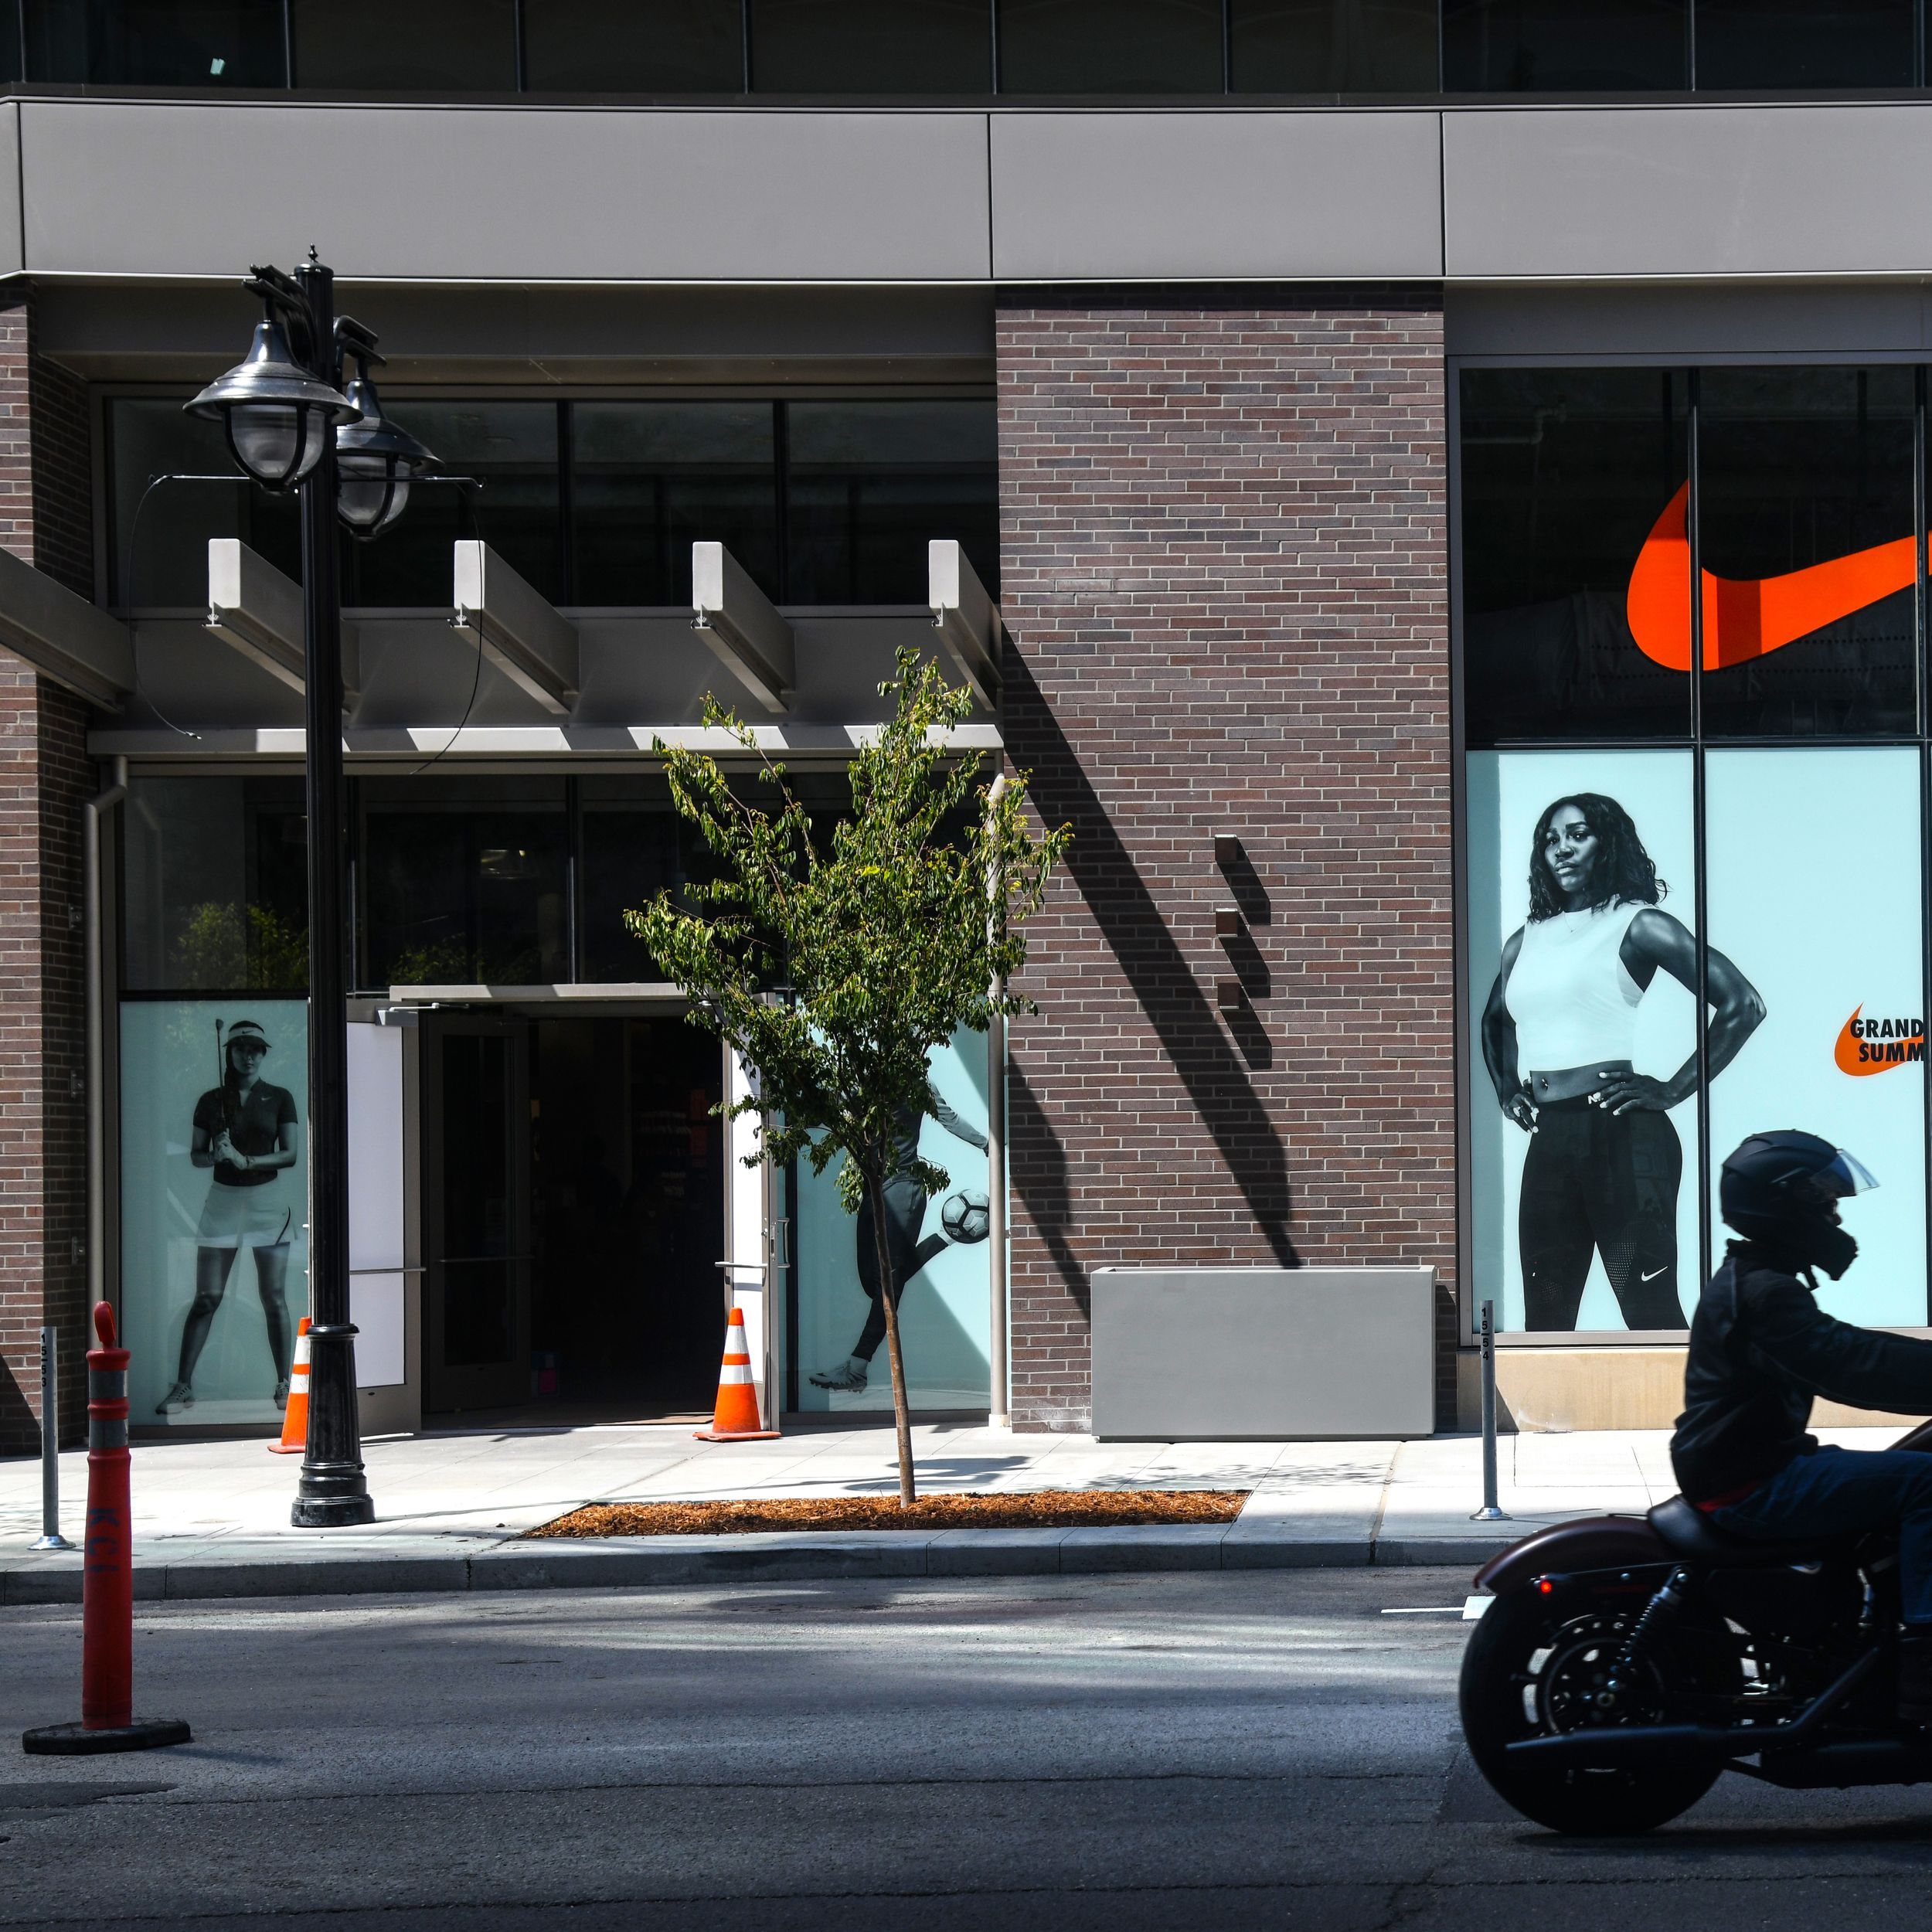 navigare strategia analogia  Nike store to open Thursday in former downtown Macy's building   The  Spokesman-Review